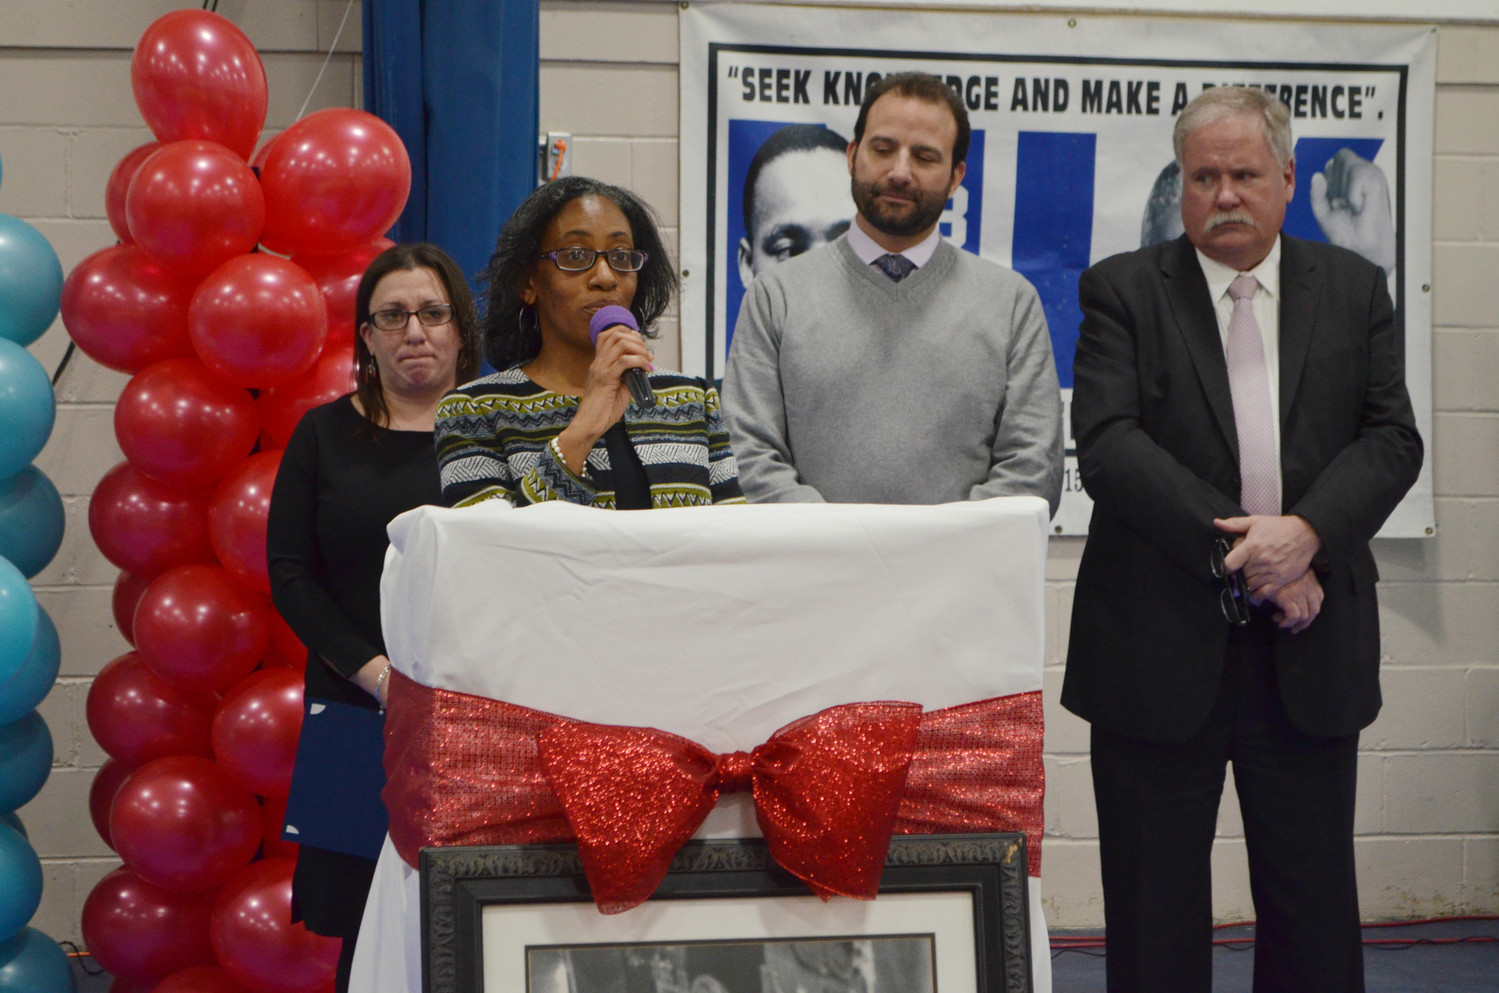 Councilwoman Anissa Moore, joined by Council Vice President Chumi Diamond, far left, Council President Anthony Eramo and Acting City Manager and Police Commissioner Michael Tangney, spoke to a crowd of hundreds at the MLK Center.